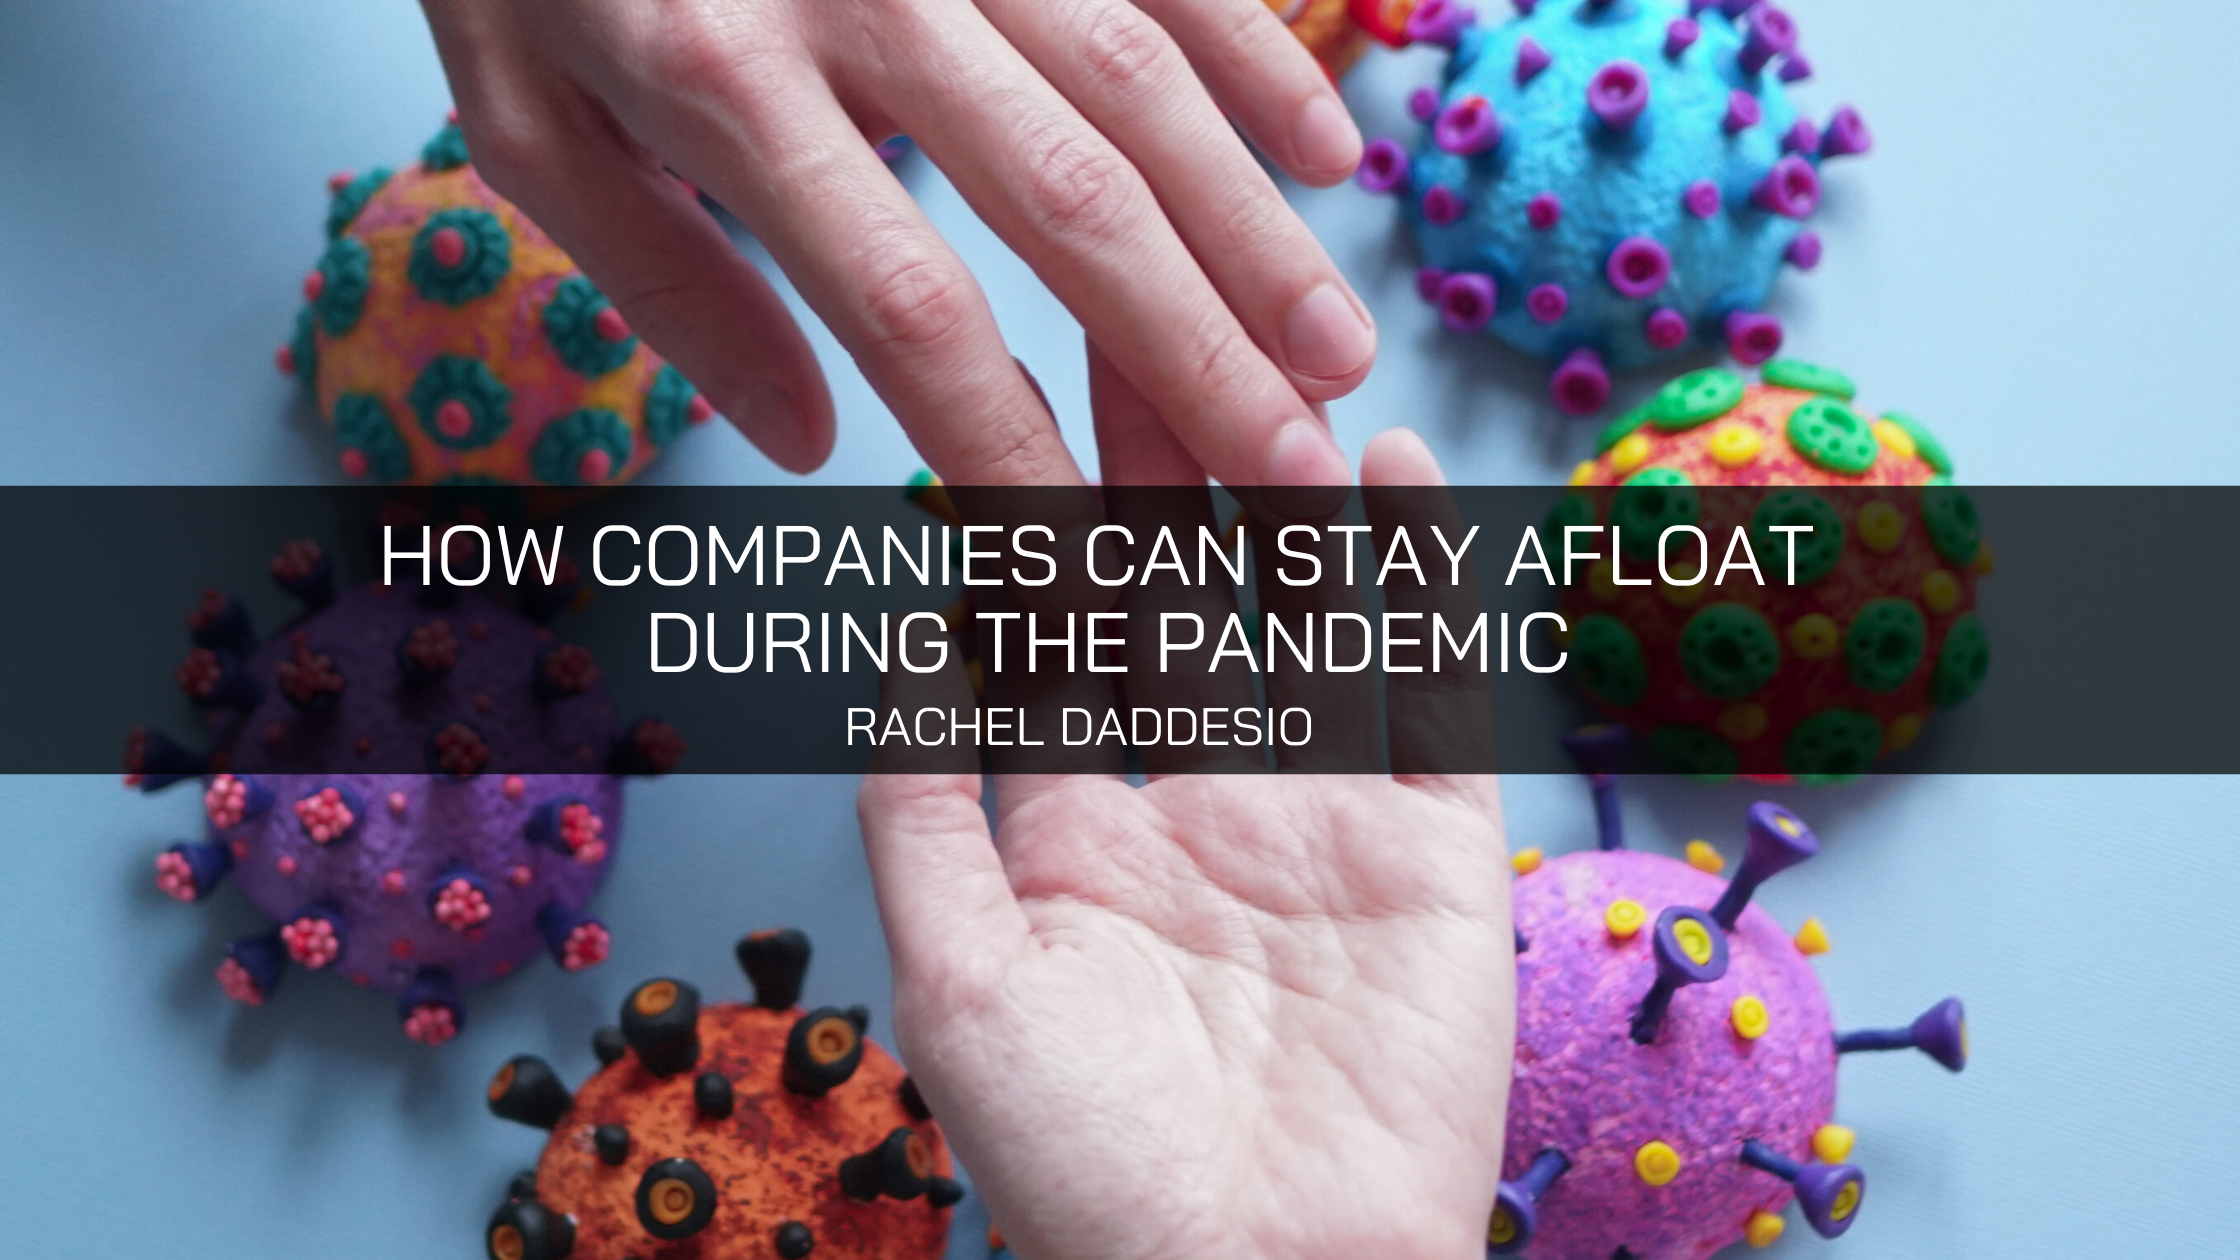 How Companies Can Stay Afloat During the Pandemic Explains Rachel Daddesio